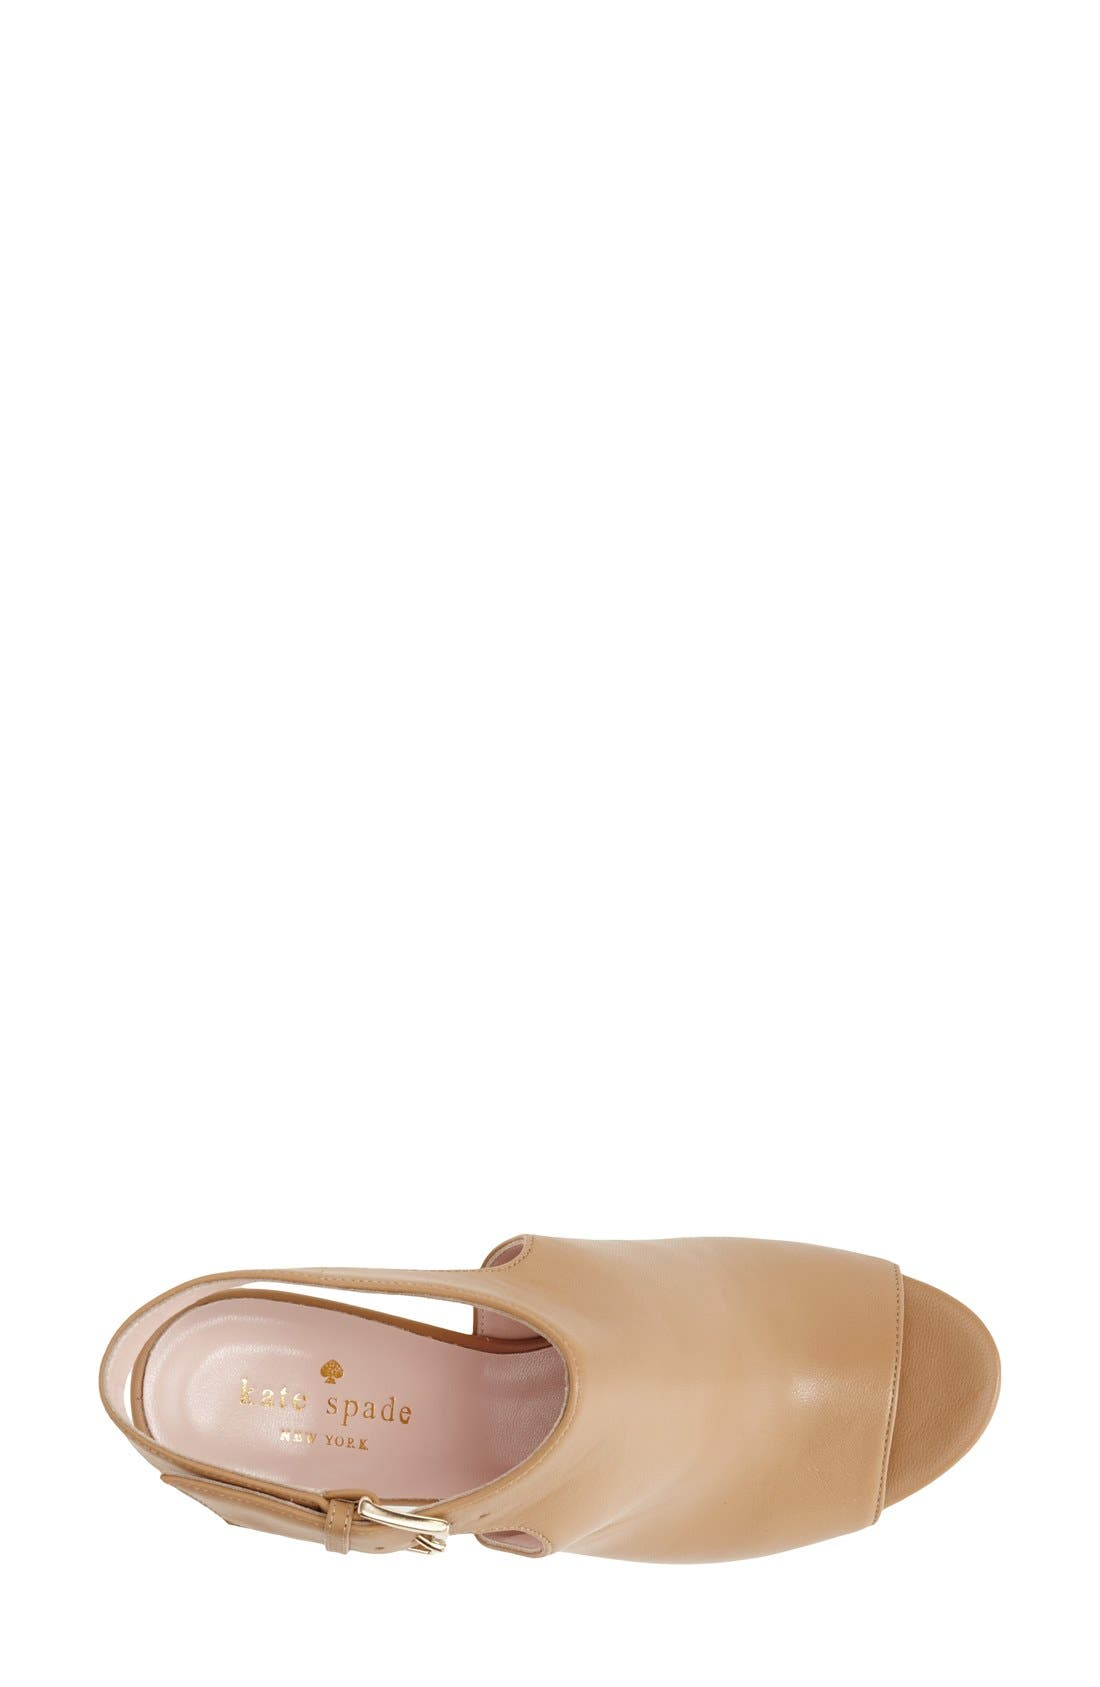 Alternate Image 3  - kate spade new york 'ingrada' slingback sandal (Women)